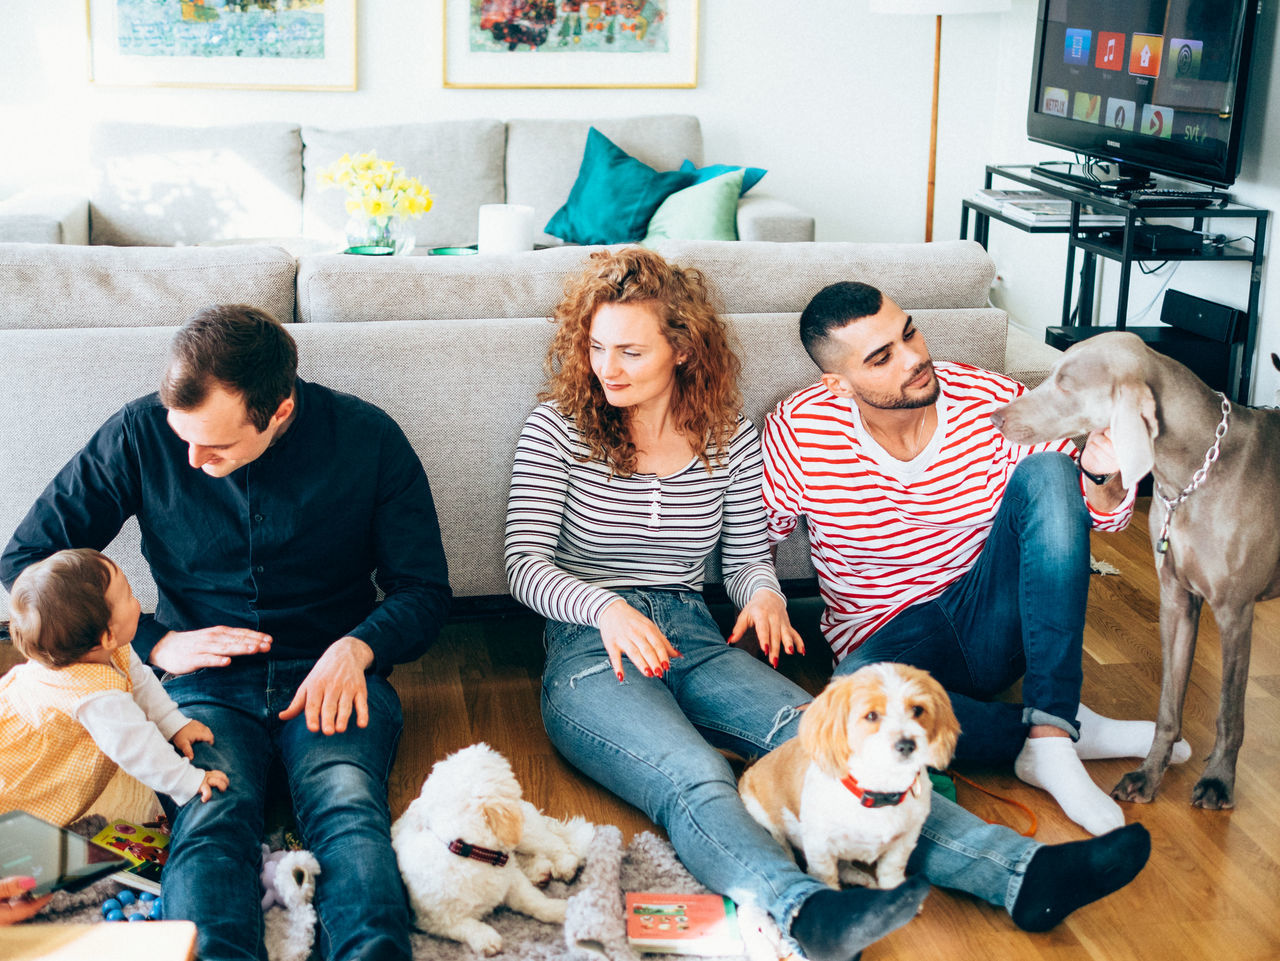 Beautiful stock photos of ostern, pets, dog, togetherness, friendship